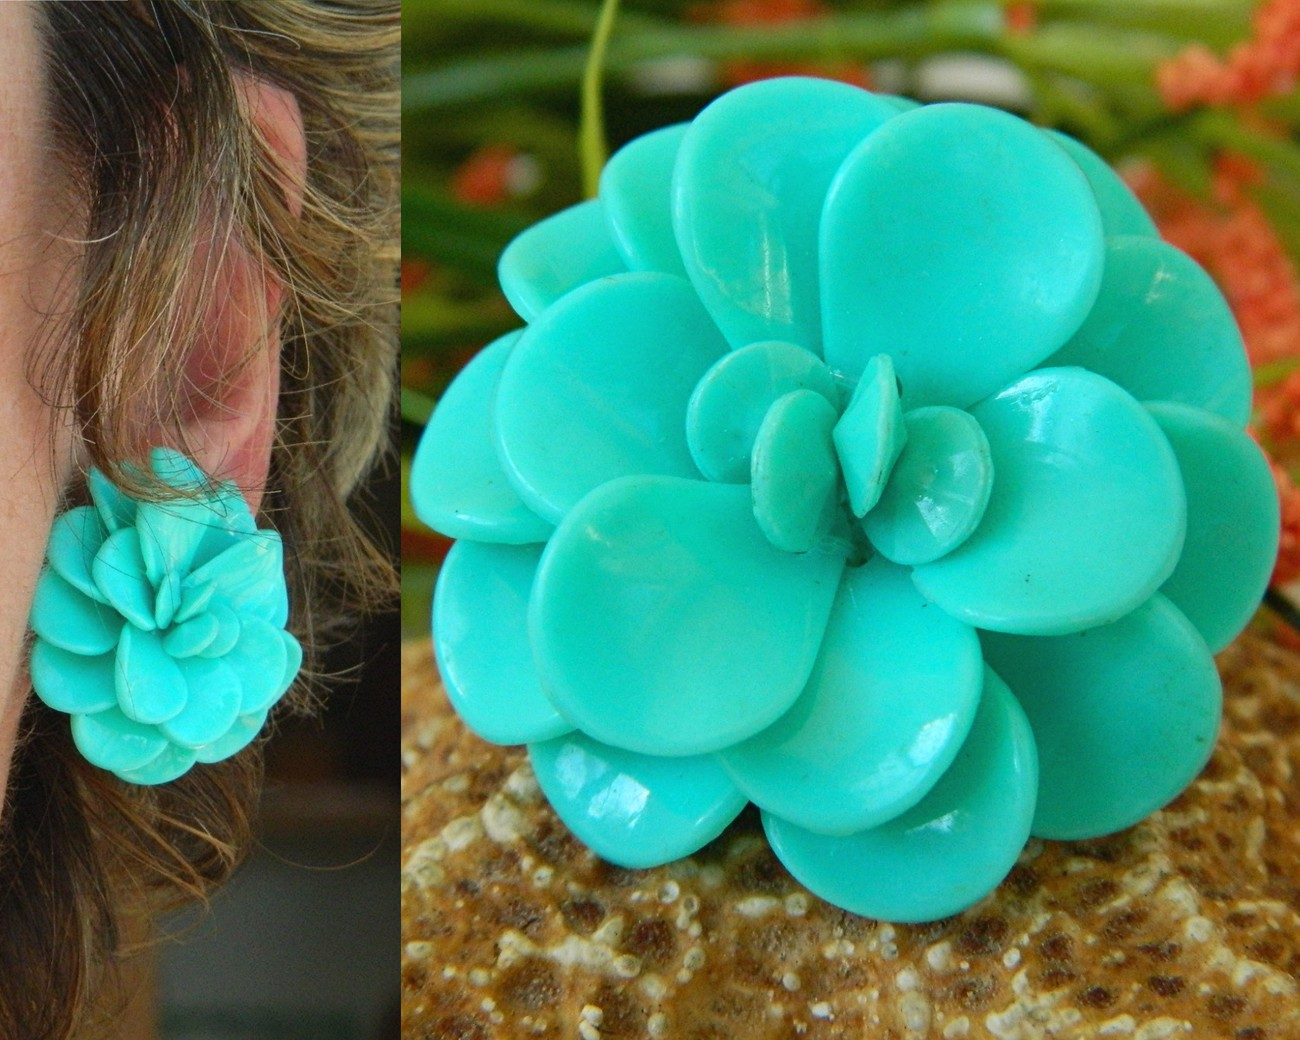 Vintage Lucite Plastic Flower Earrings Turquoise Blue Clips